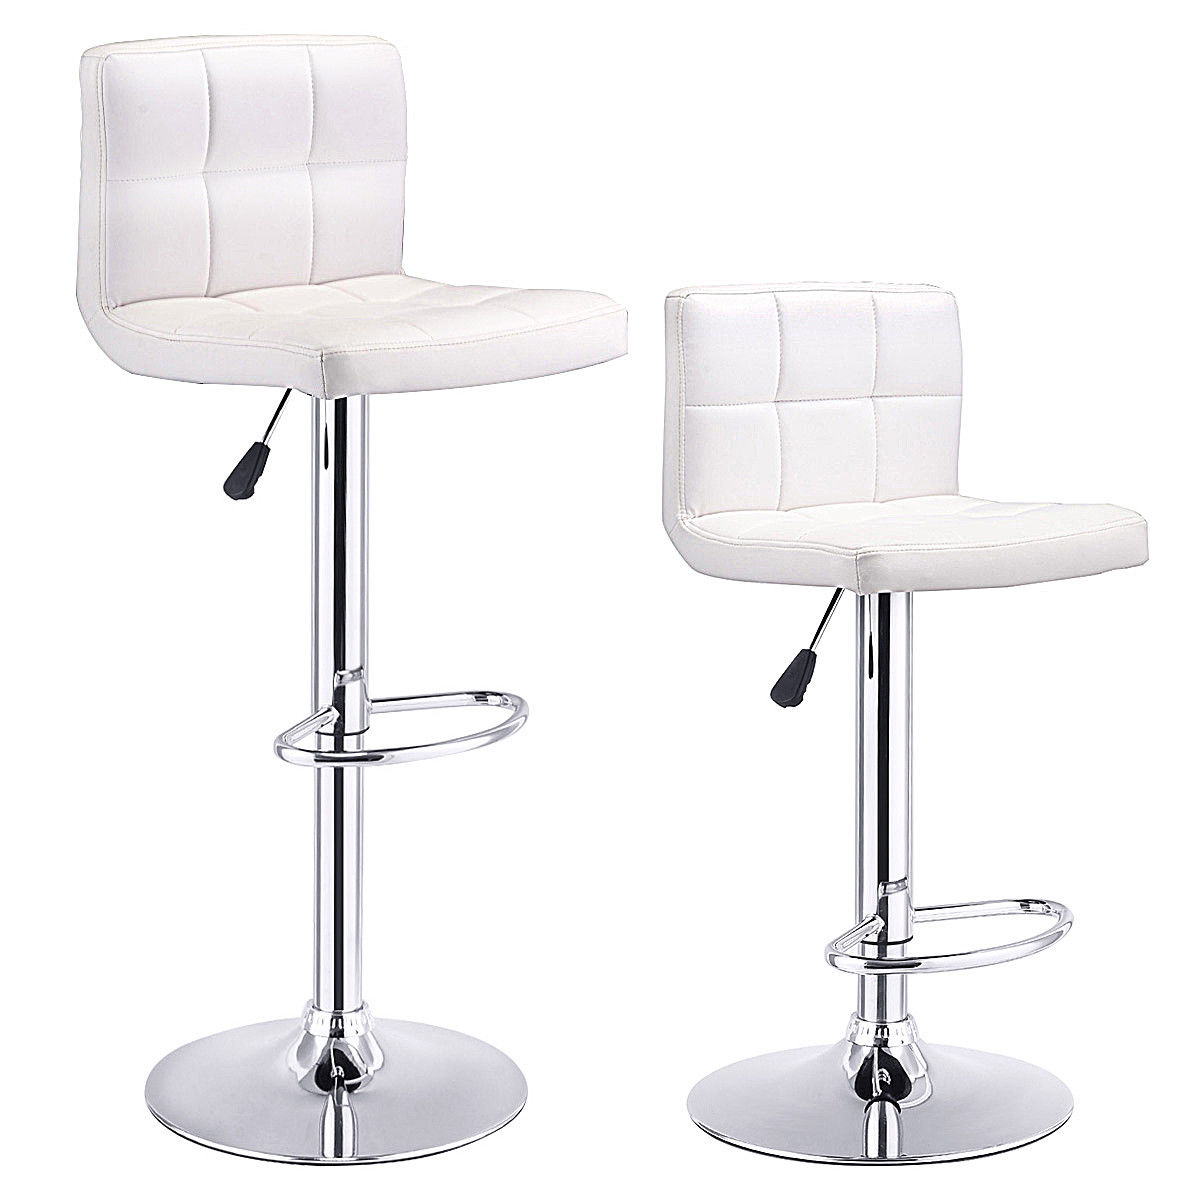 Costway Set Of 2 Bar Stools PU Leather Adjustable Bar Stool Swivel Pub Chairs White by Costway